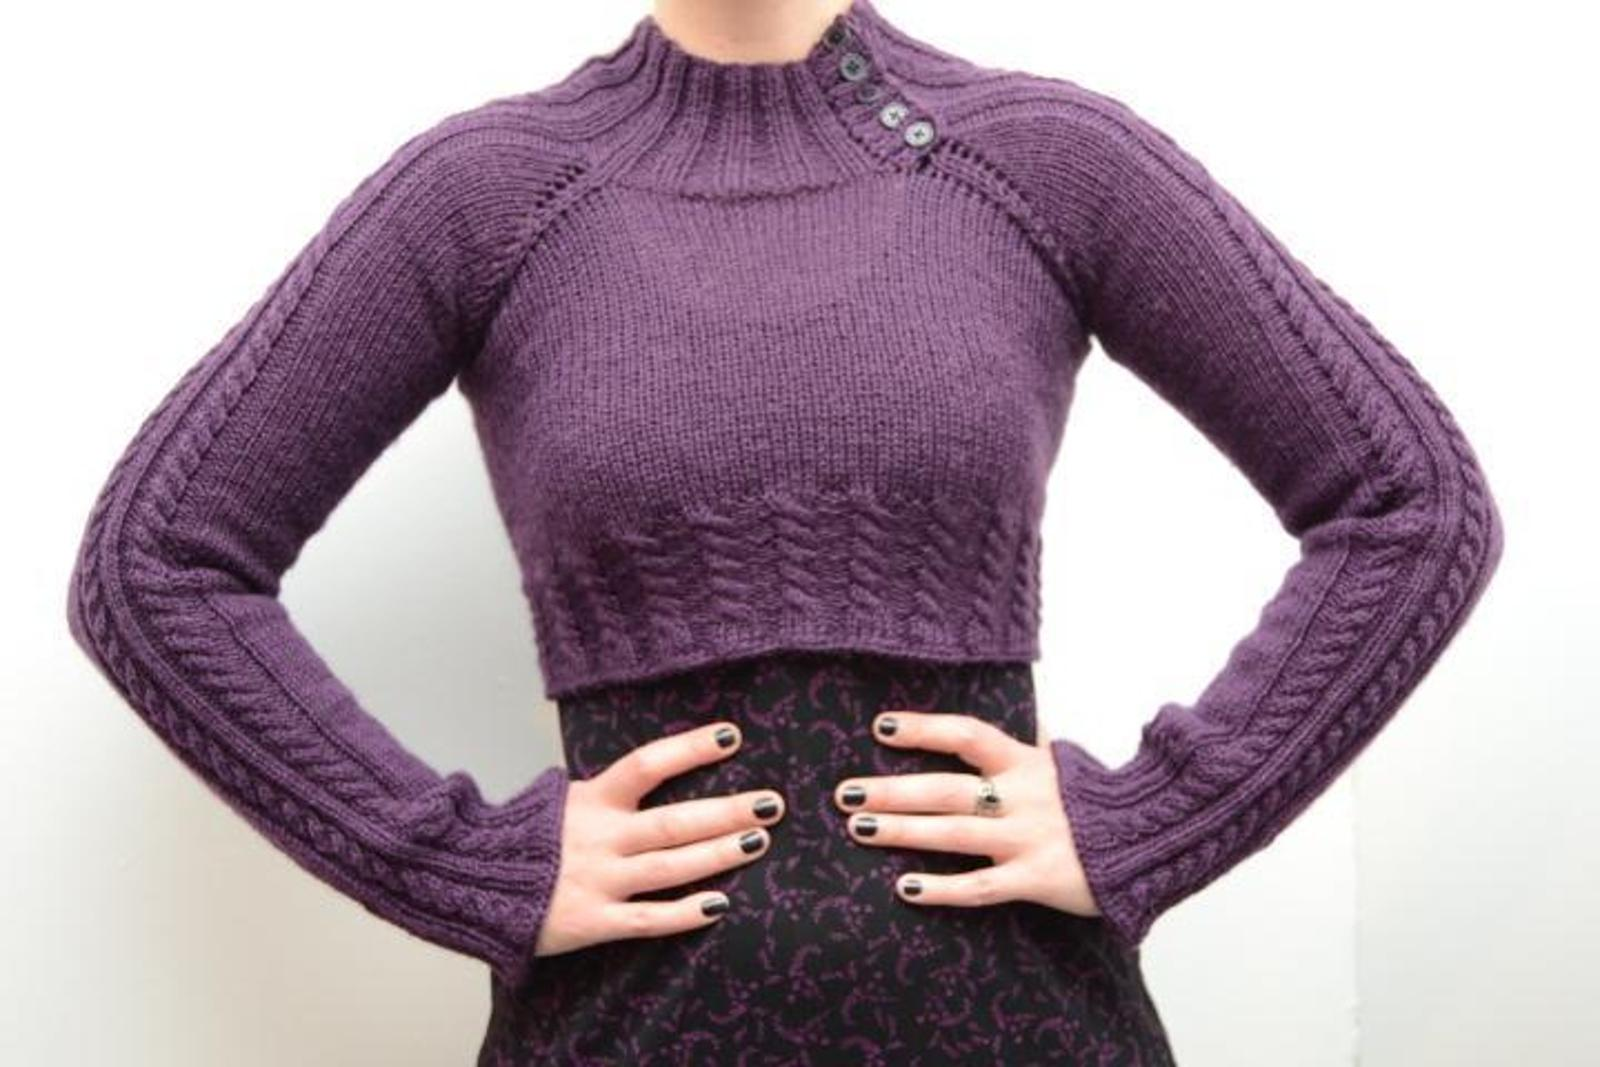 Heather's Cabled Raglan Top Knitting Pattern